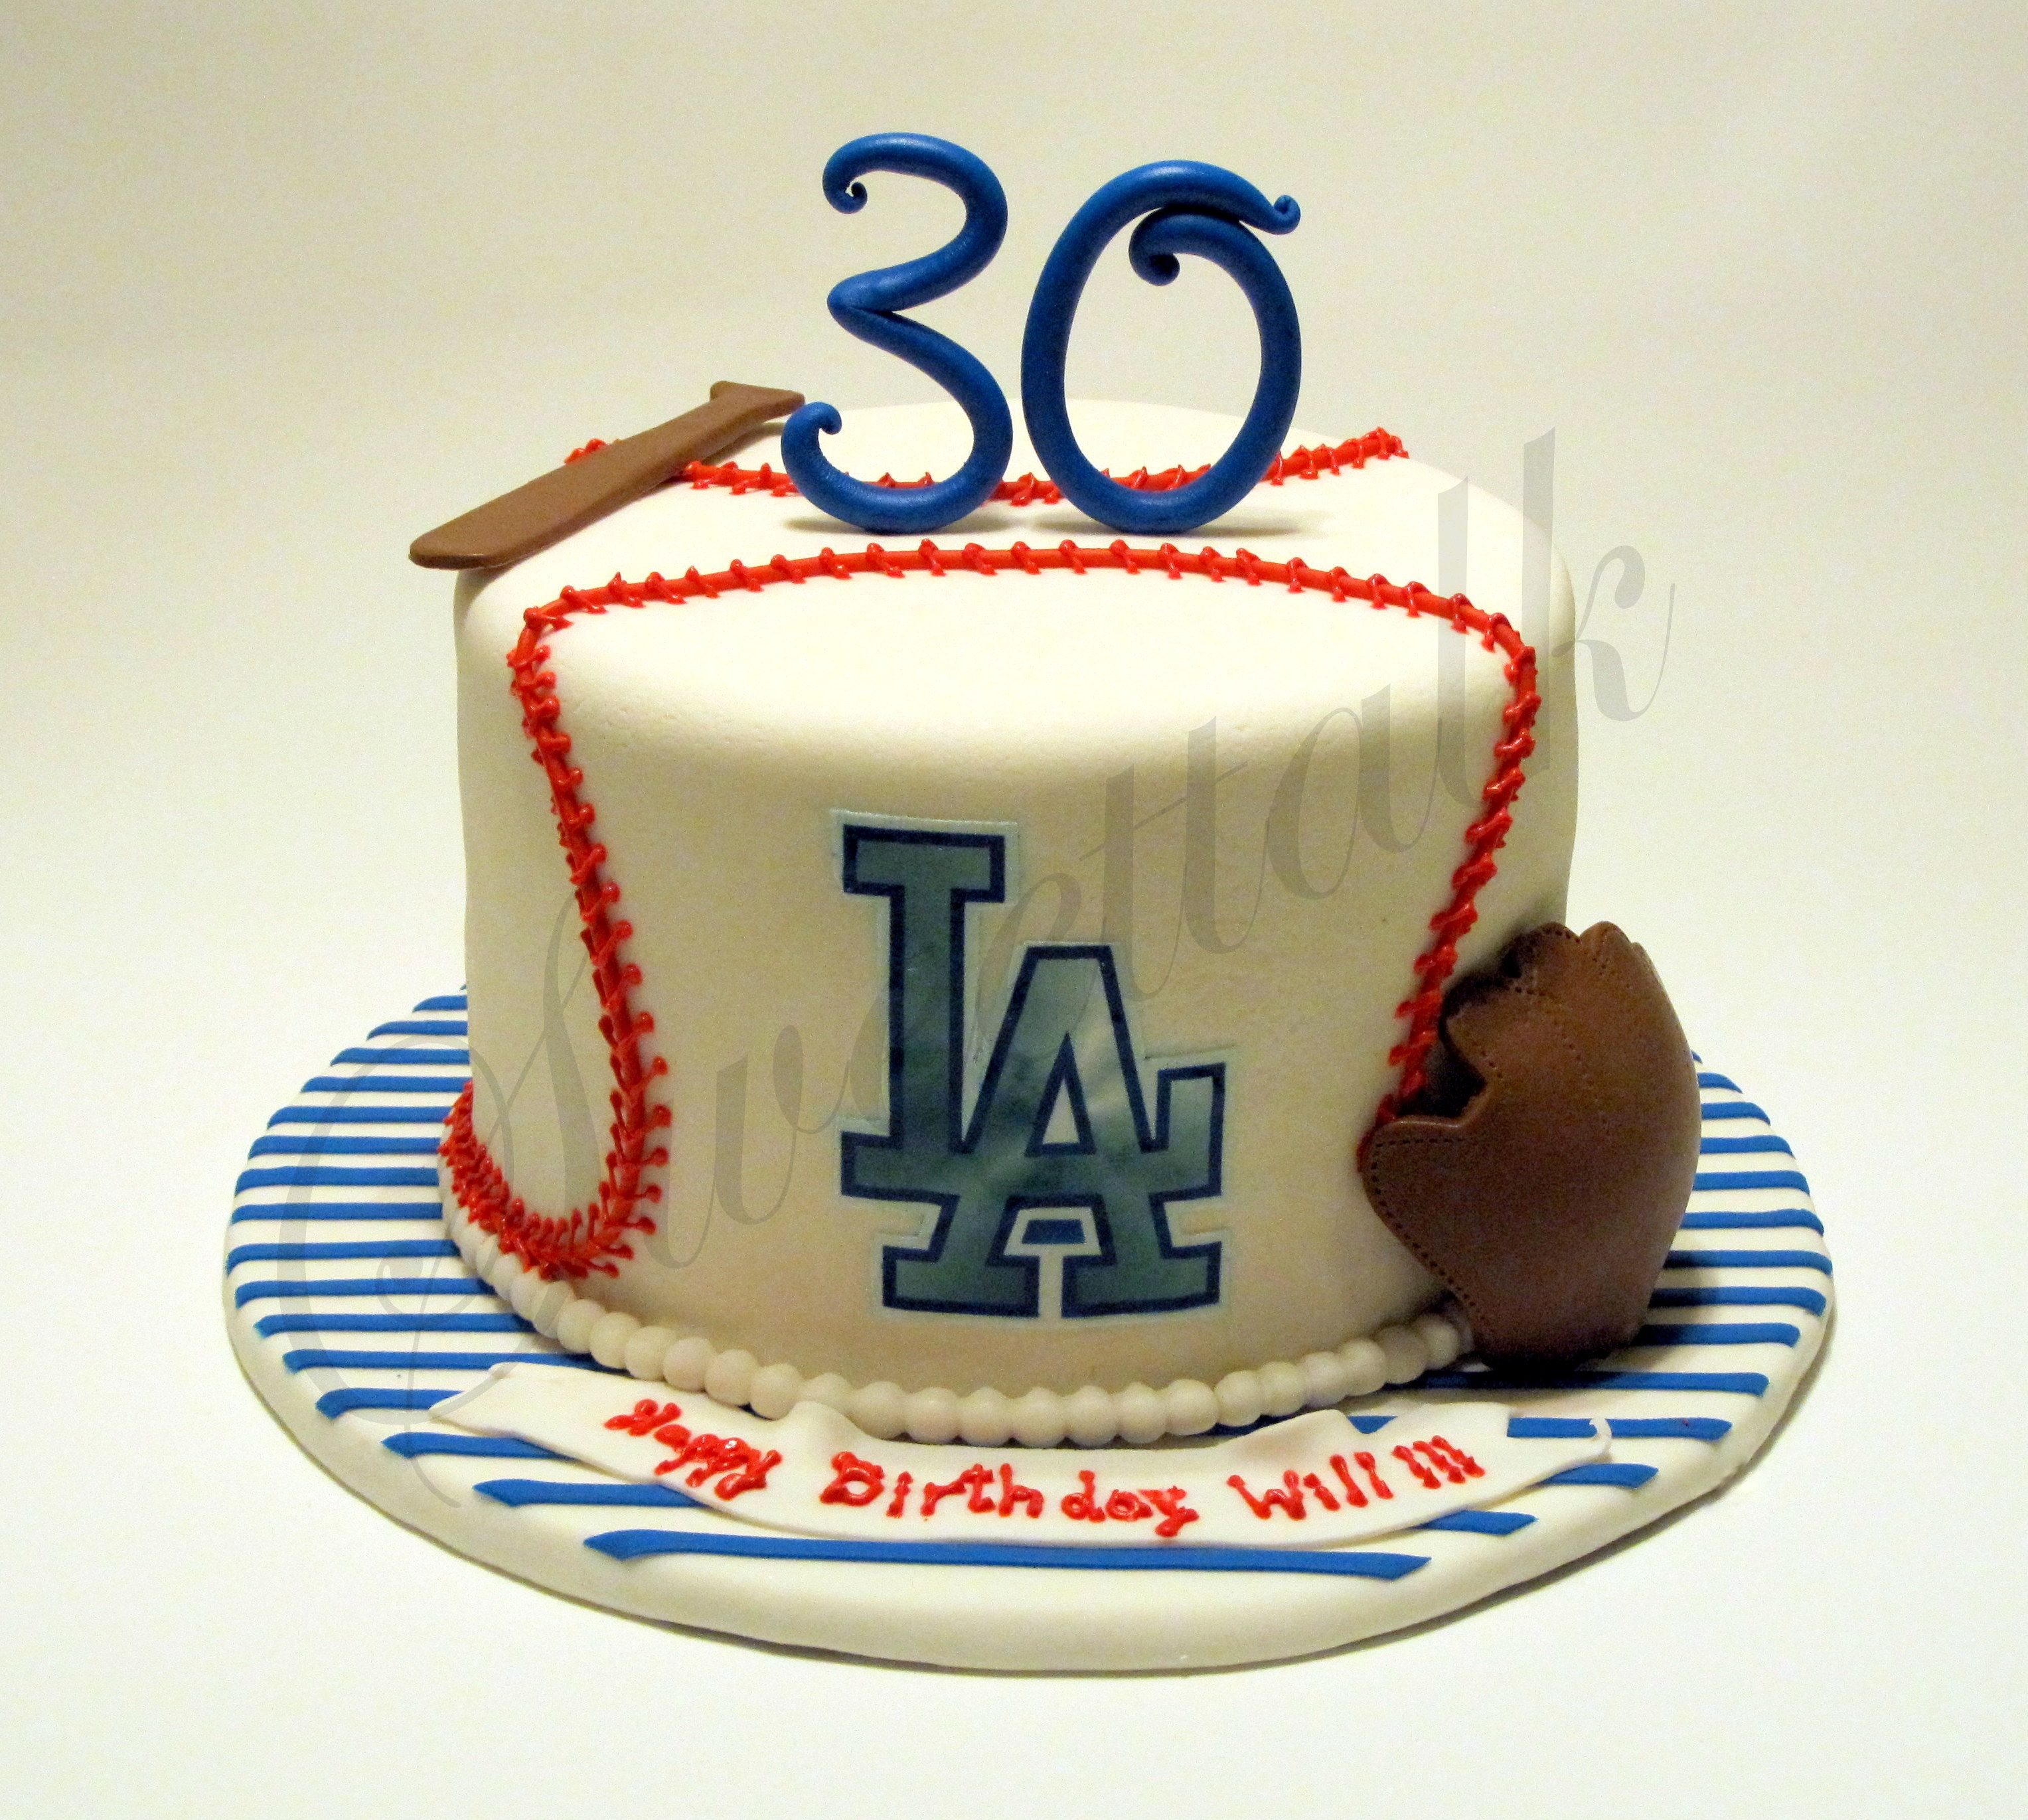 Pleasant La Dodgers Baseball Cake With Images Cake Cupcake Cakes Funny Birthday Cards Online Fluifree Goldxyz